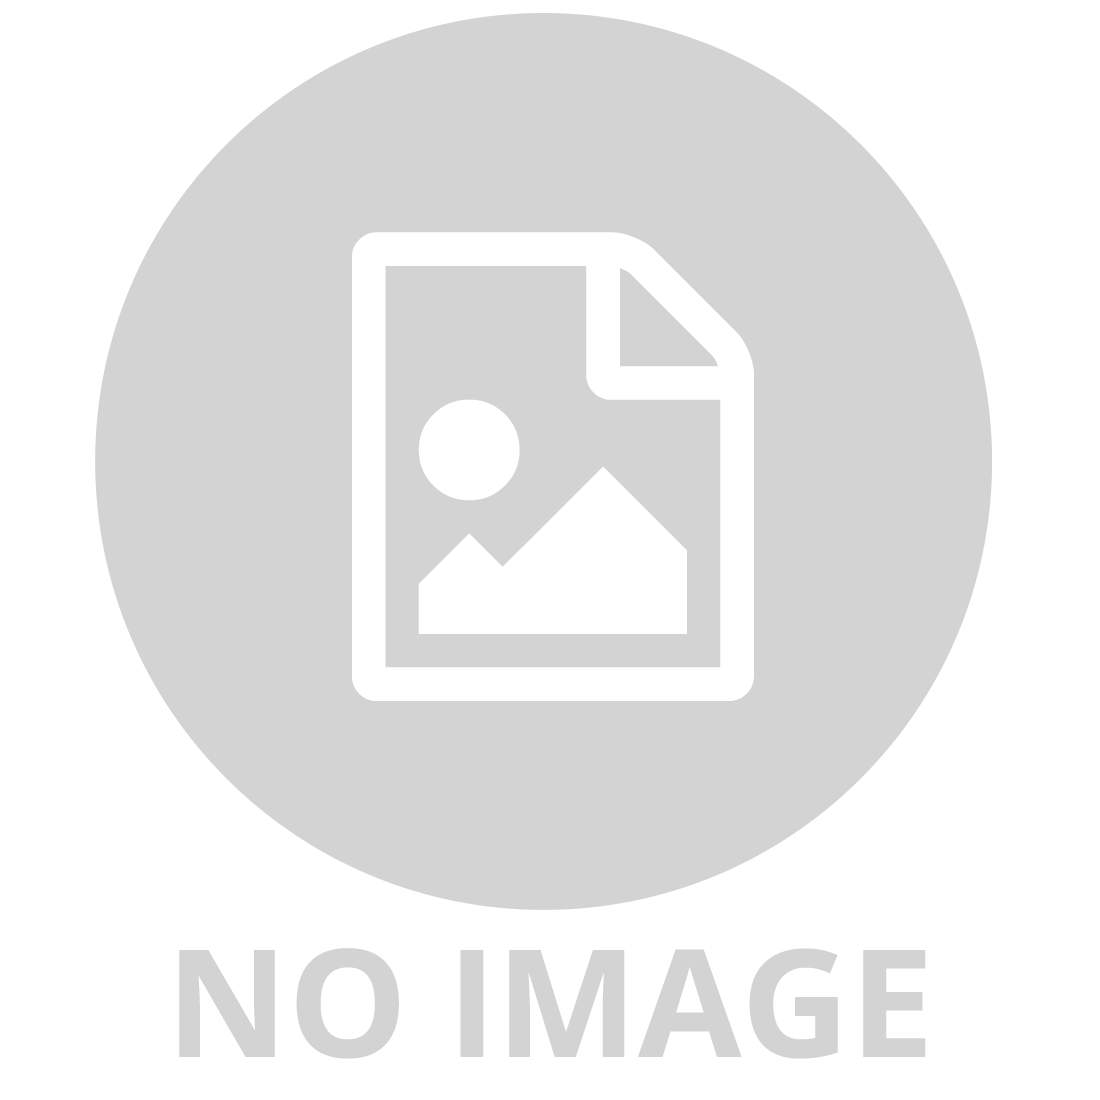 KINDI KIDS KINDI FUN SHOPPING CART